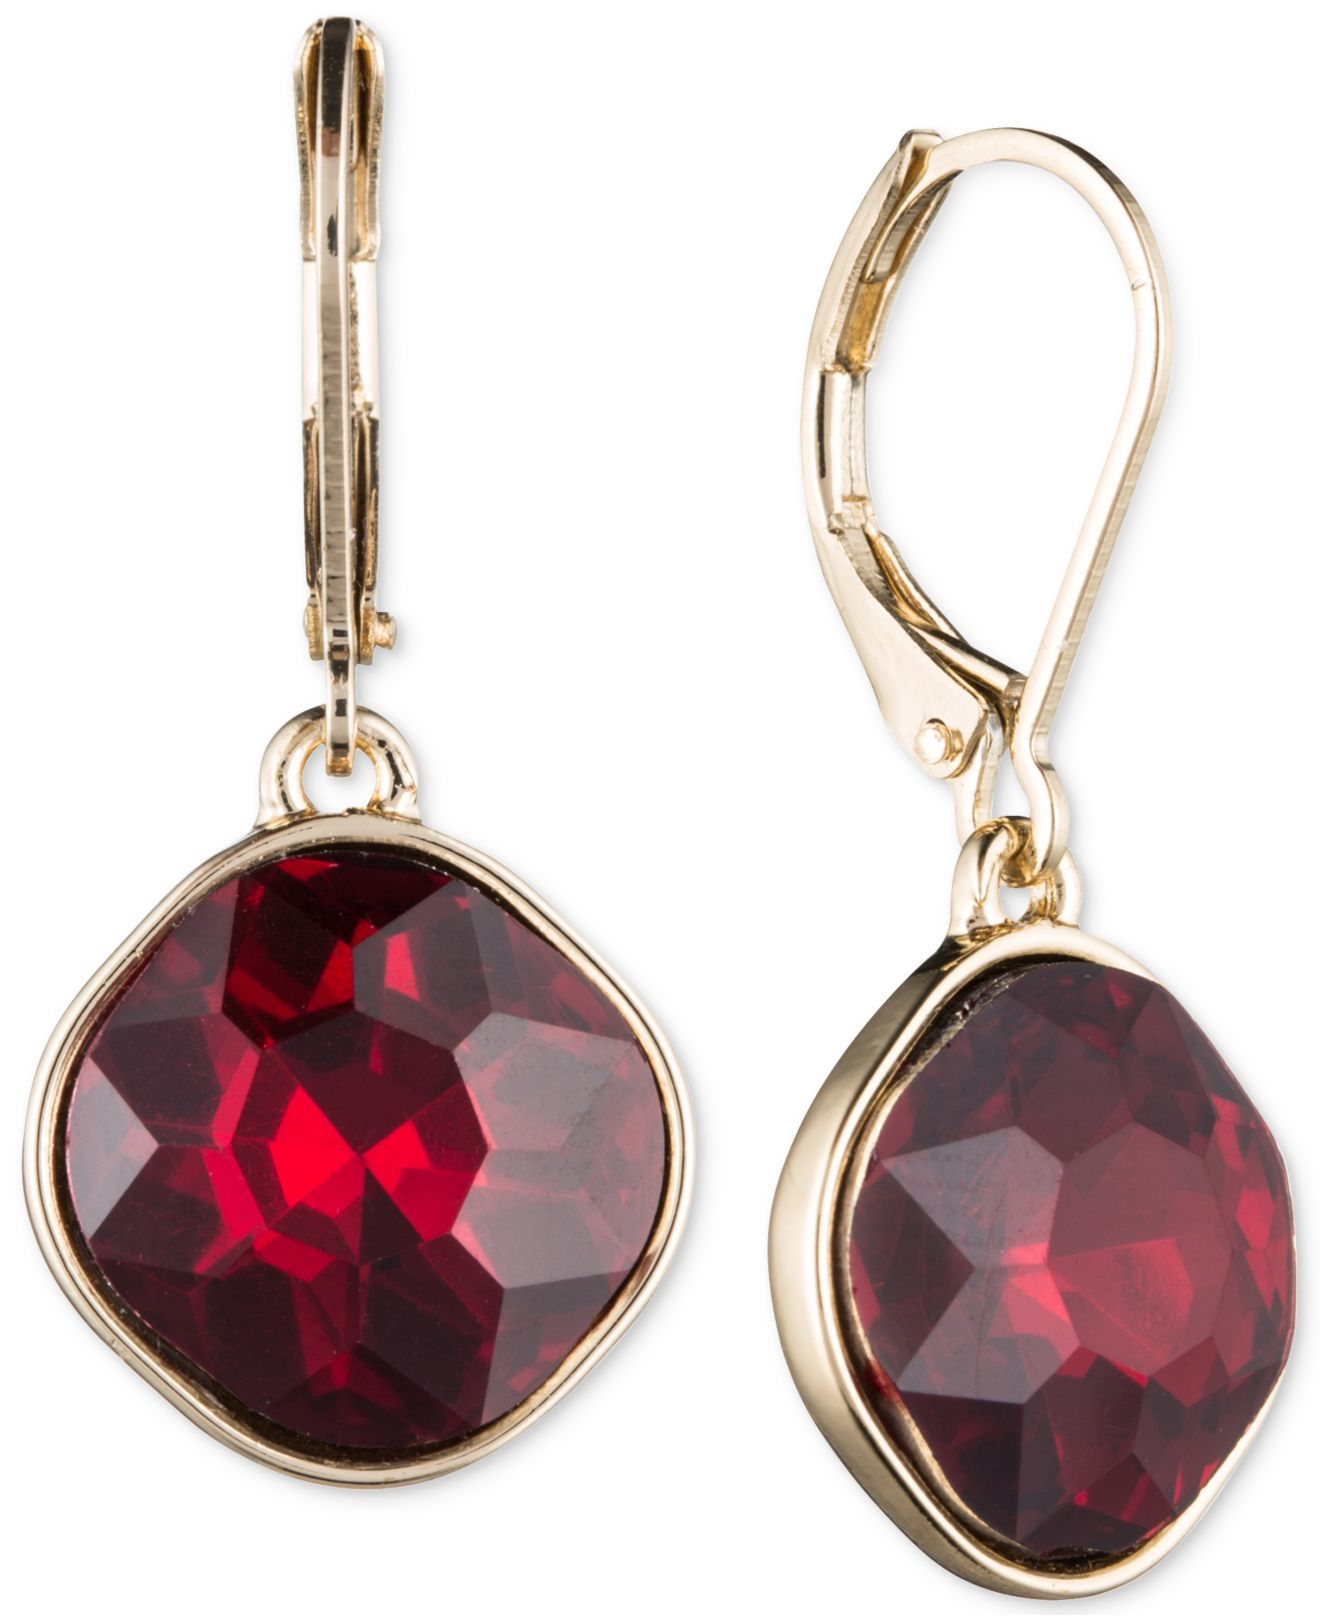 Lyst - Nine west Gold-tone Red Stone Drop Earrings in Metallic